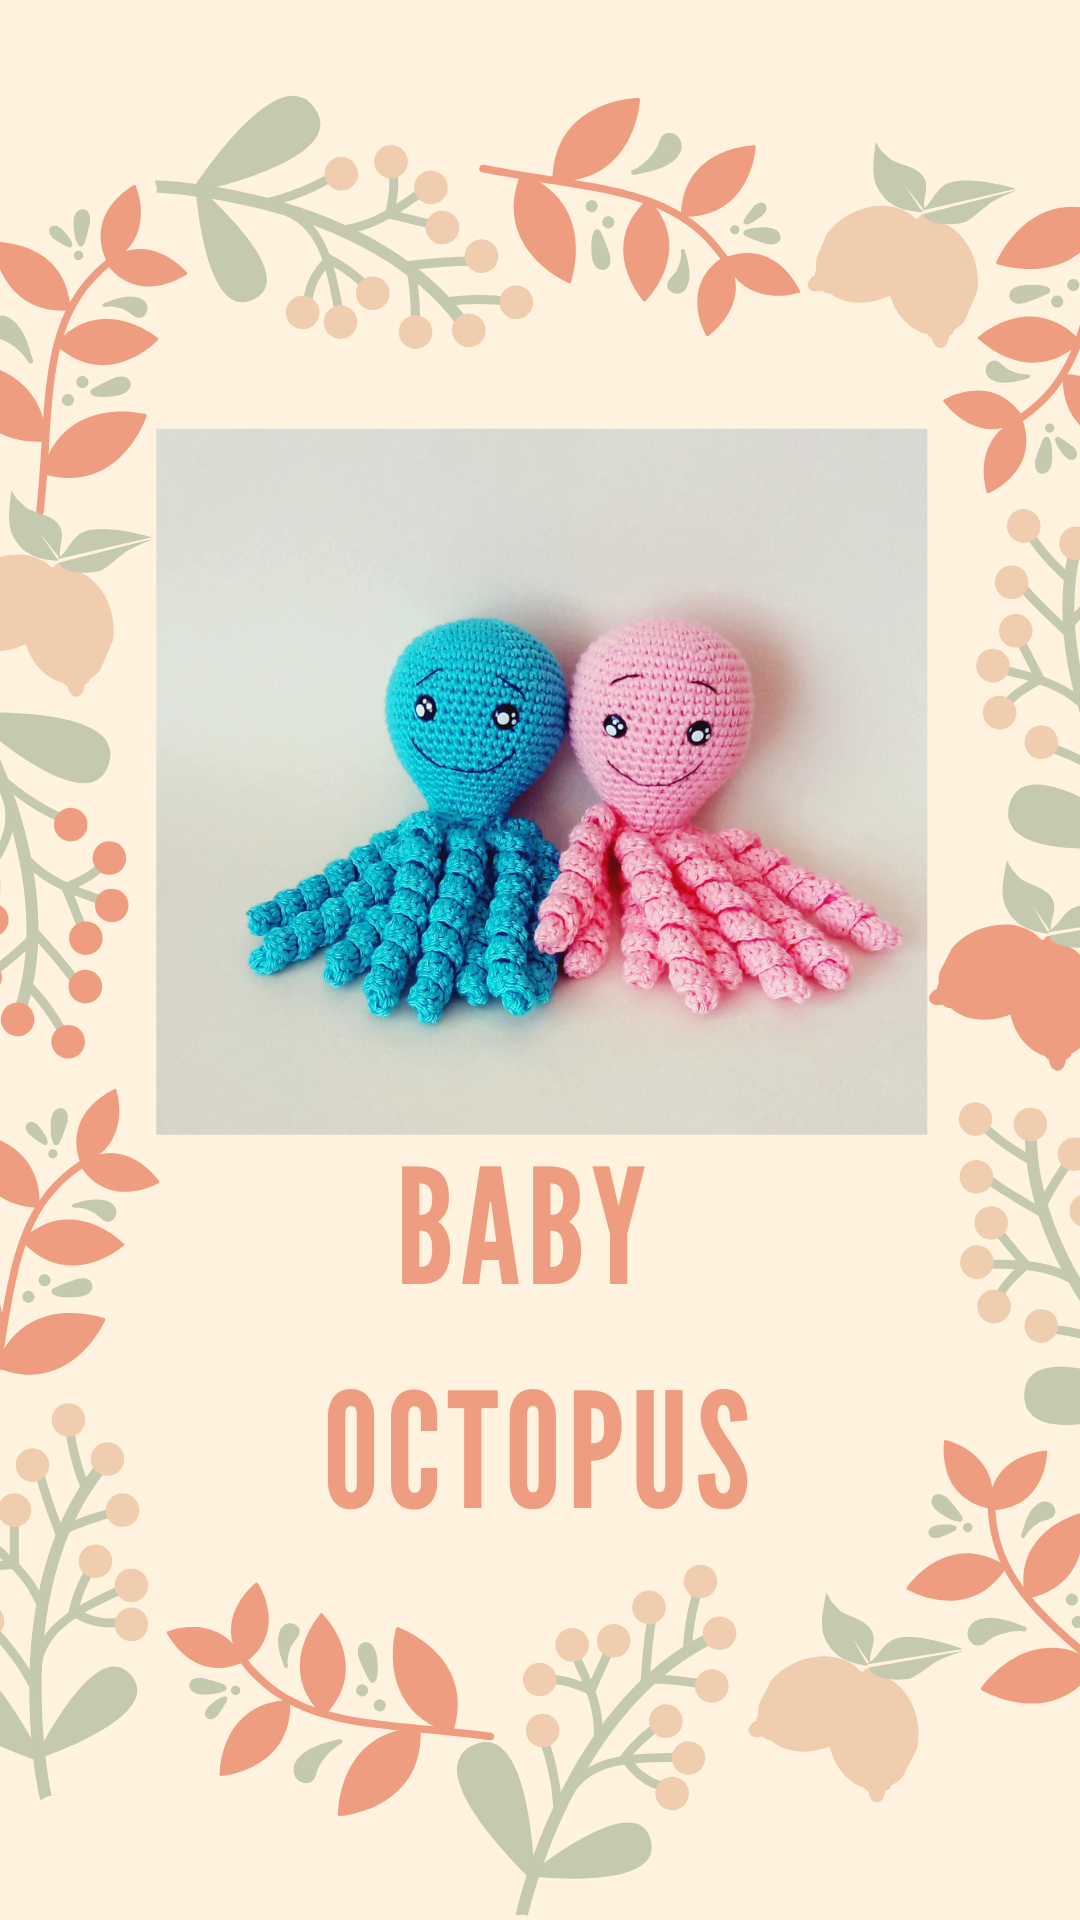 Crochet octopus toy for premature babies #crochetoctopus Crochet octopus toy for premature babies, knitted octopus amigurumi montessori toys,cute small octopus, children's room decor #crochetoctopus